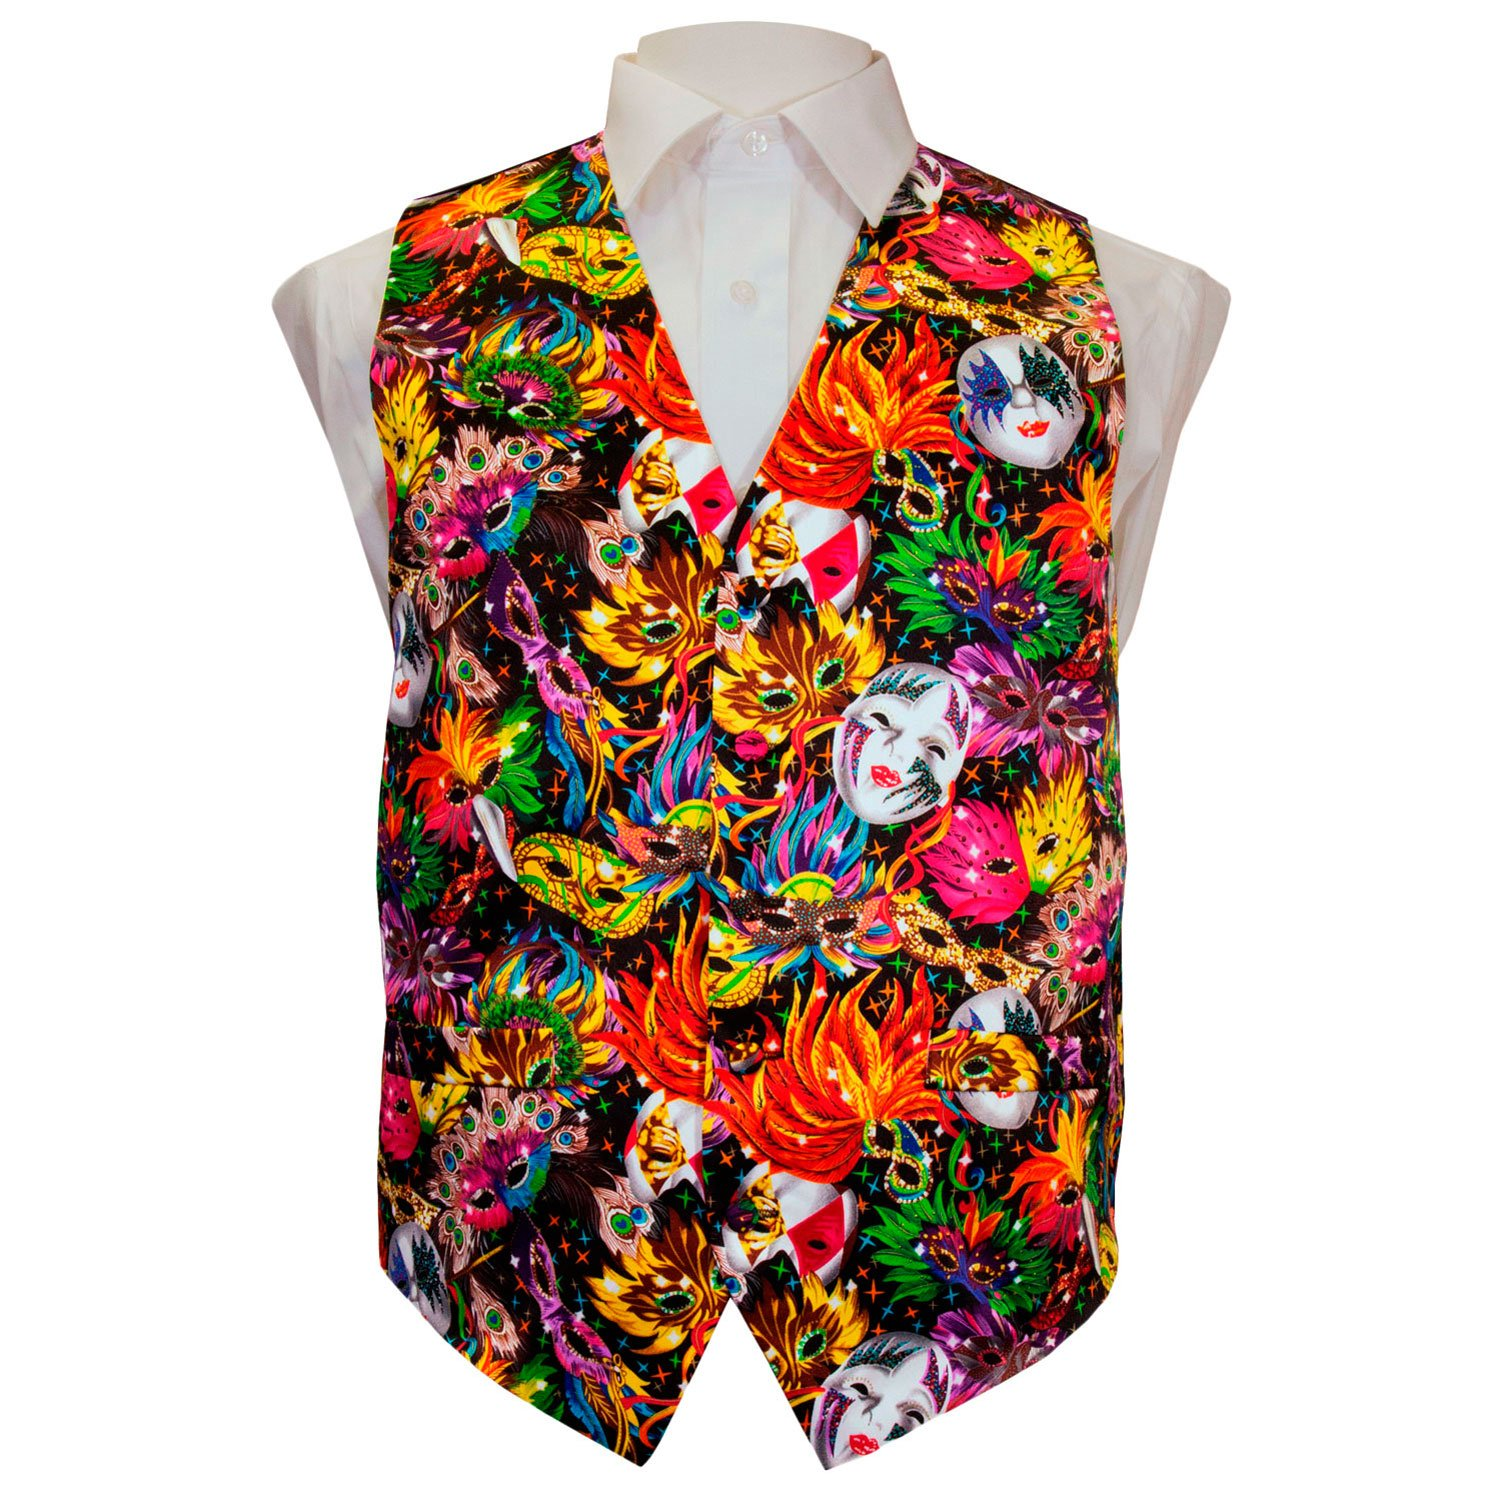 Vittorio Farina Mardi Gras Colorful Vibrant Party Mask Vest /& Bow Tie ONLY